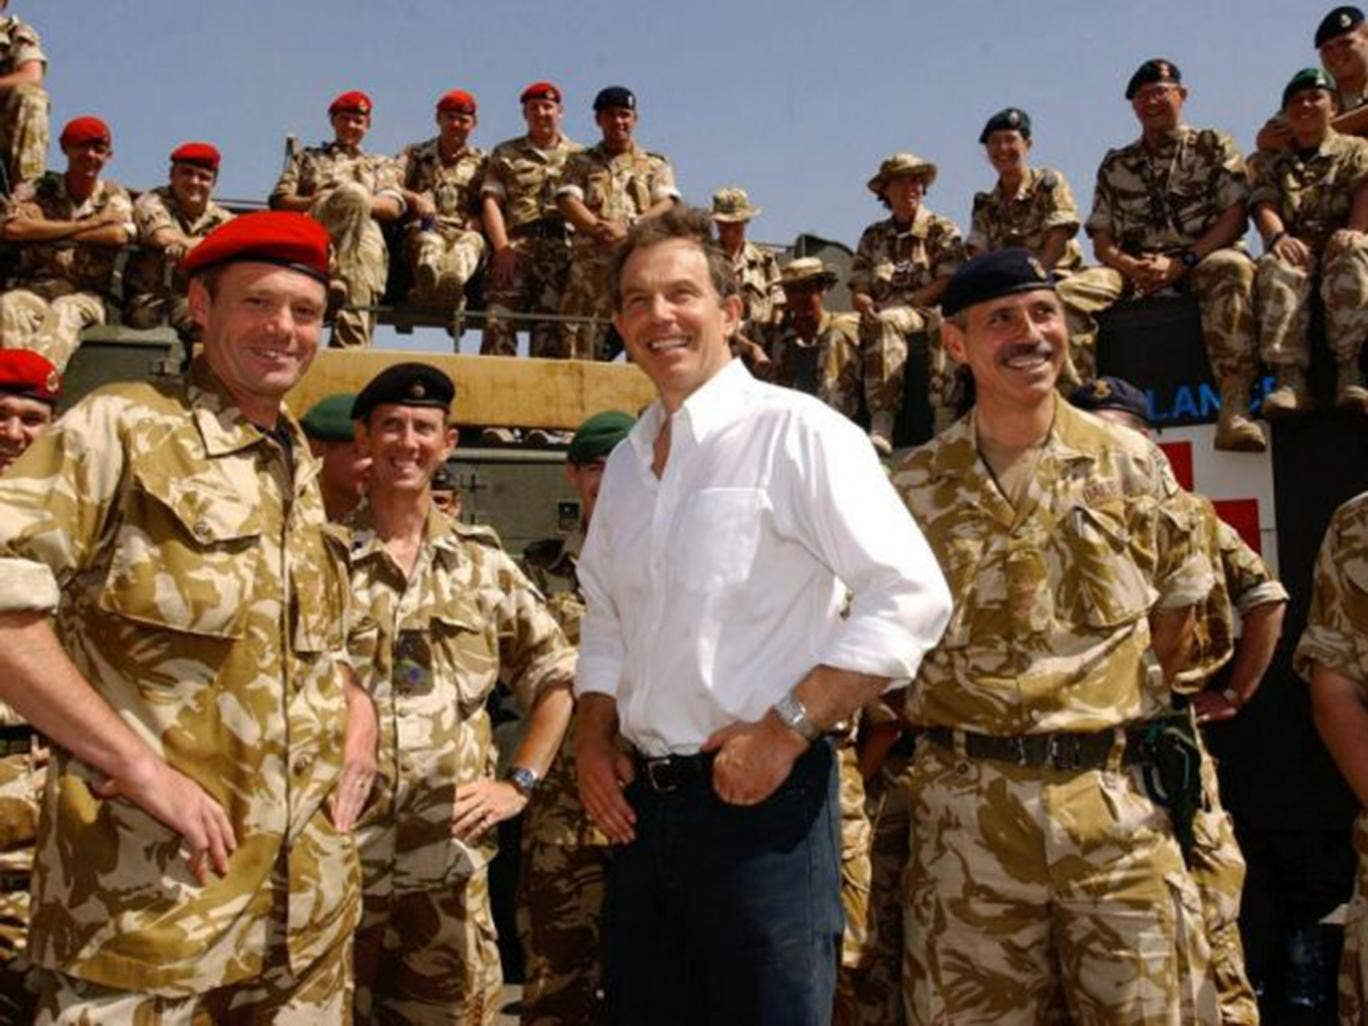 Tony Blair meeting troops in the port of Umm Qasr, Iraq in May, 2003